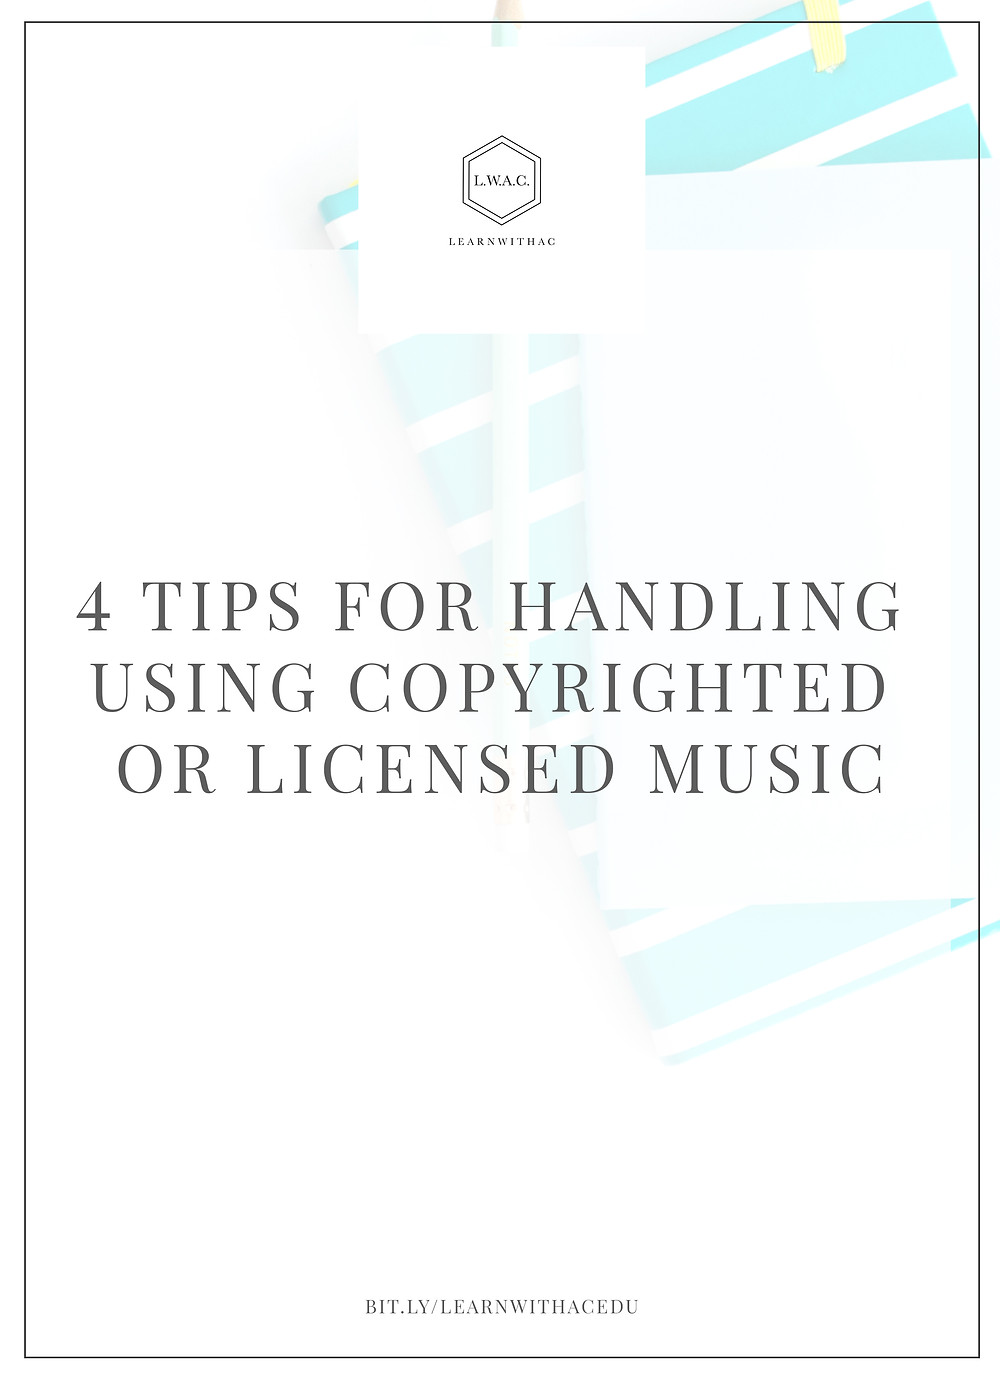 4 Tips For Dealing With Using Copyrighted or Licensed Music